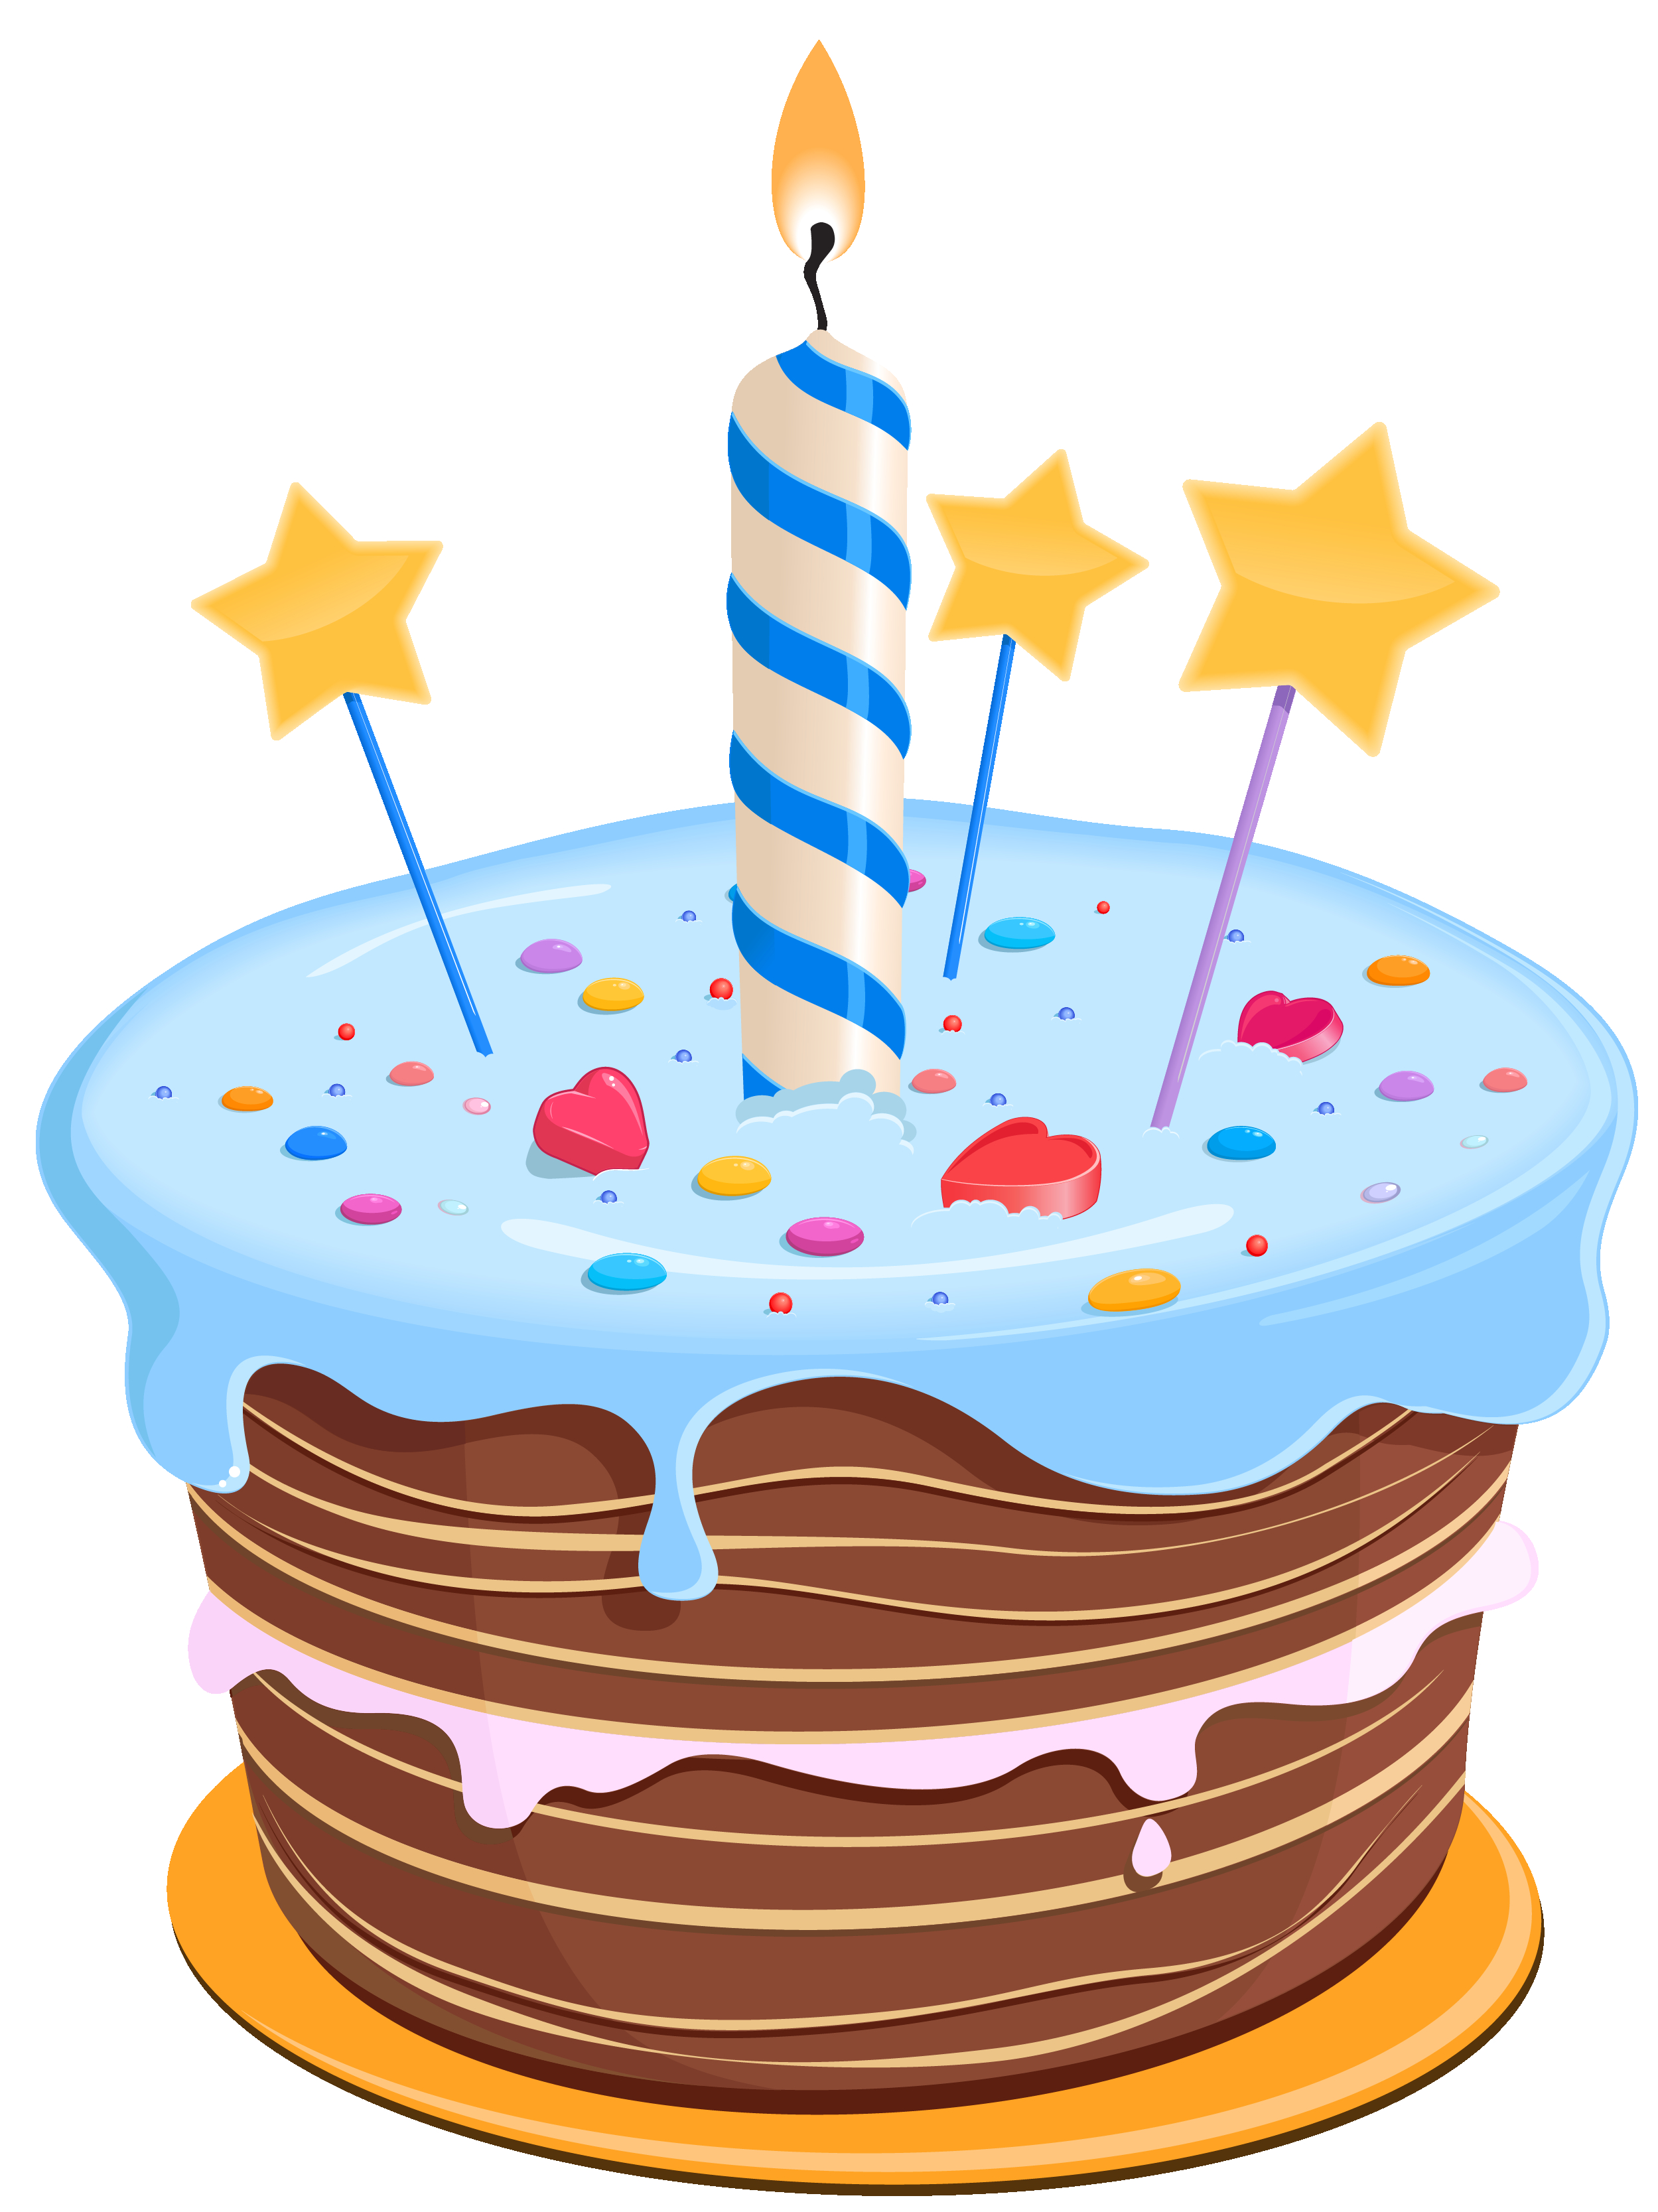 Cute Birthday Cakes Set These Cute Birthday Cake Clipart As Desktop Profile In Your Pc